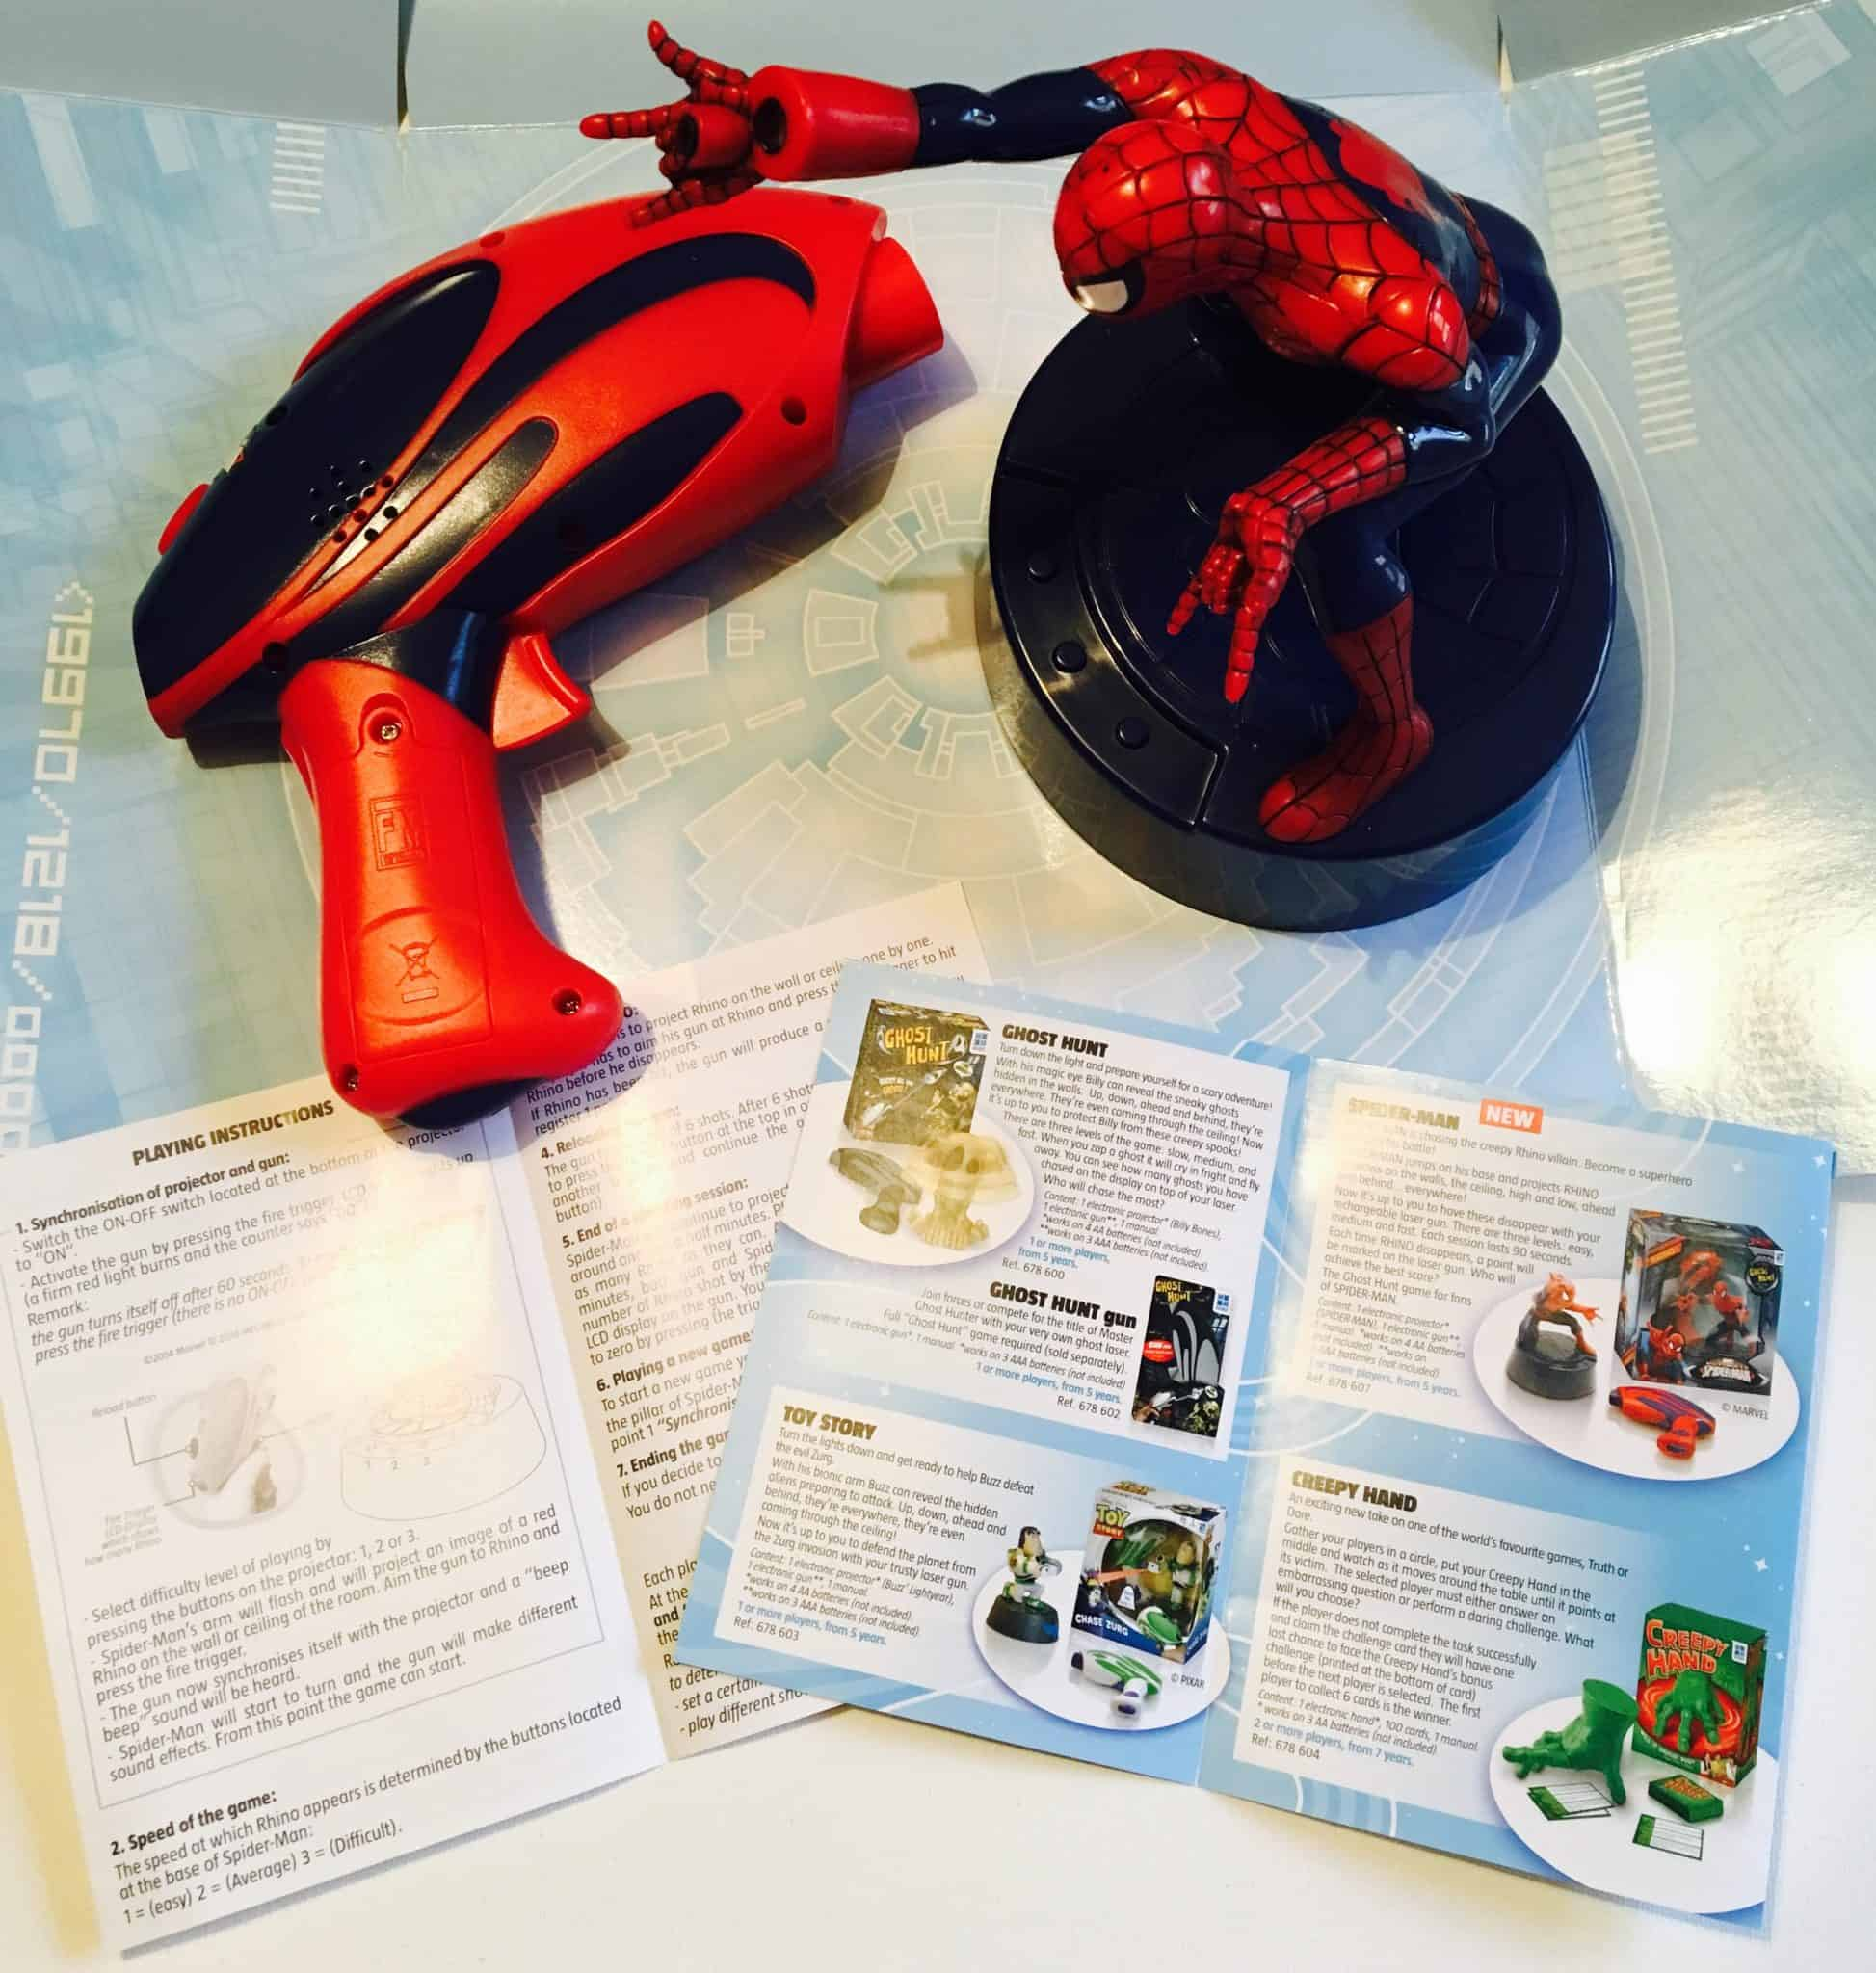 Spiderman laser game and instructions